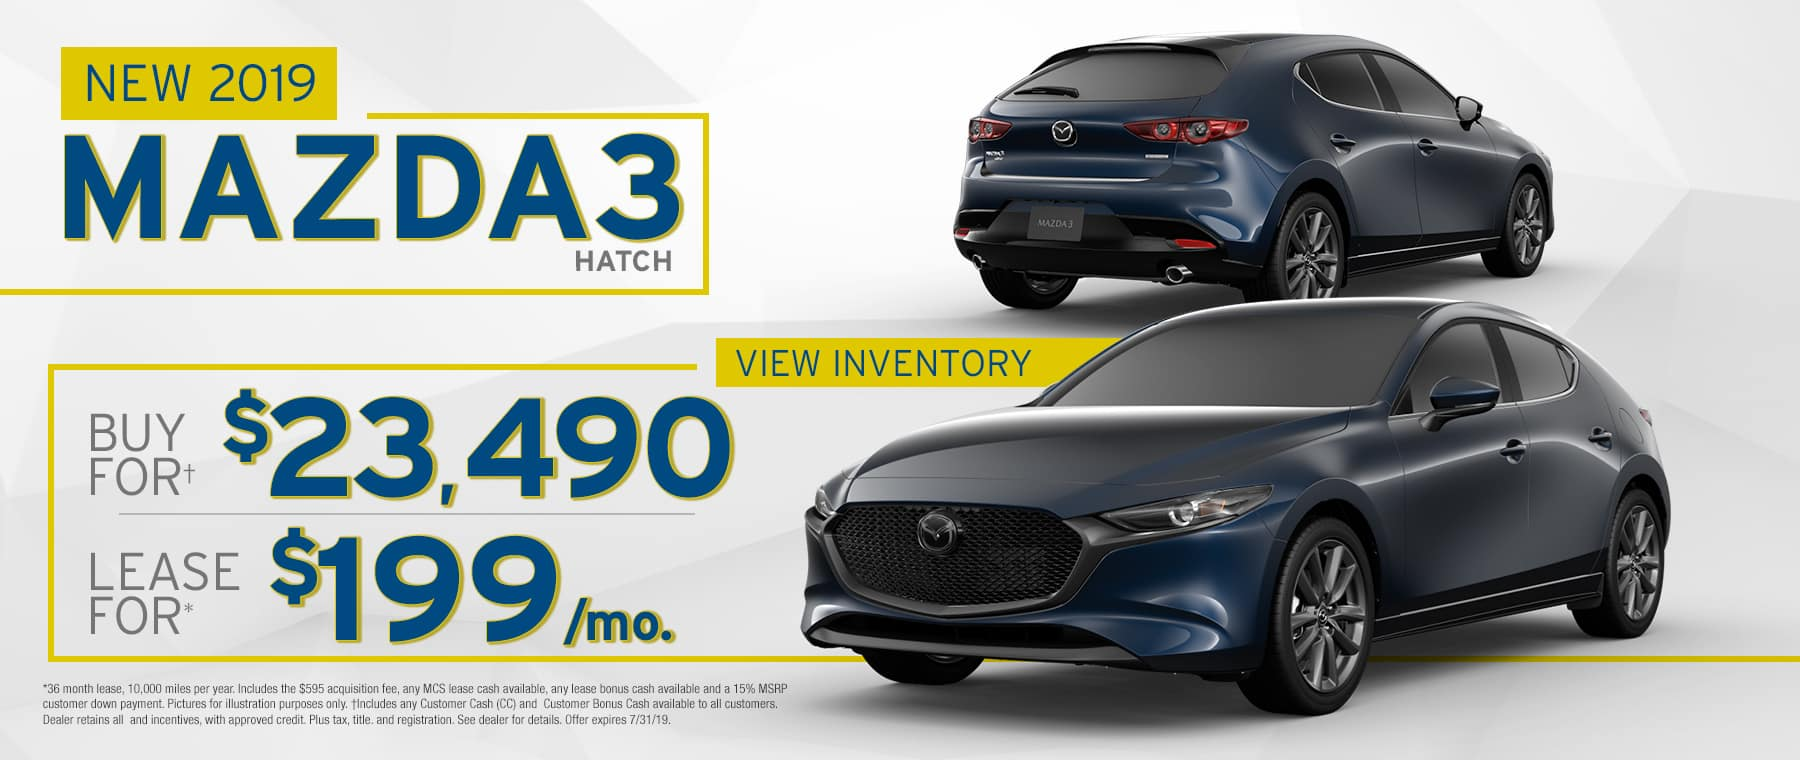 2019 Mazda3 Hatch	$199 Per Month OR Buy For $23490